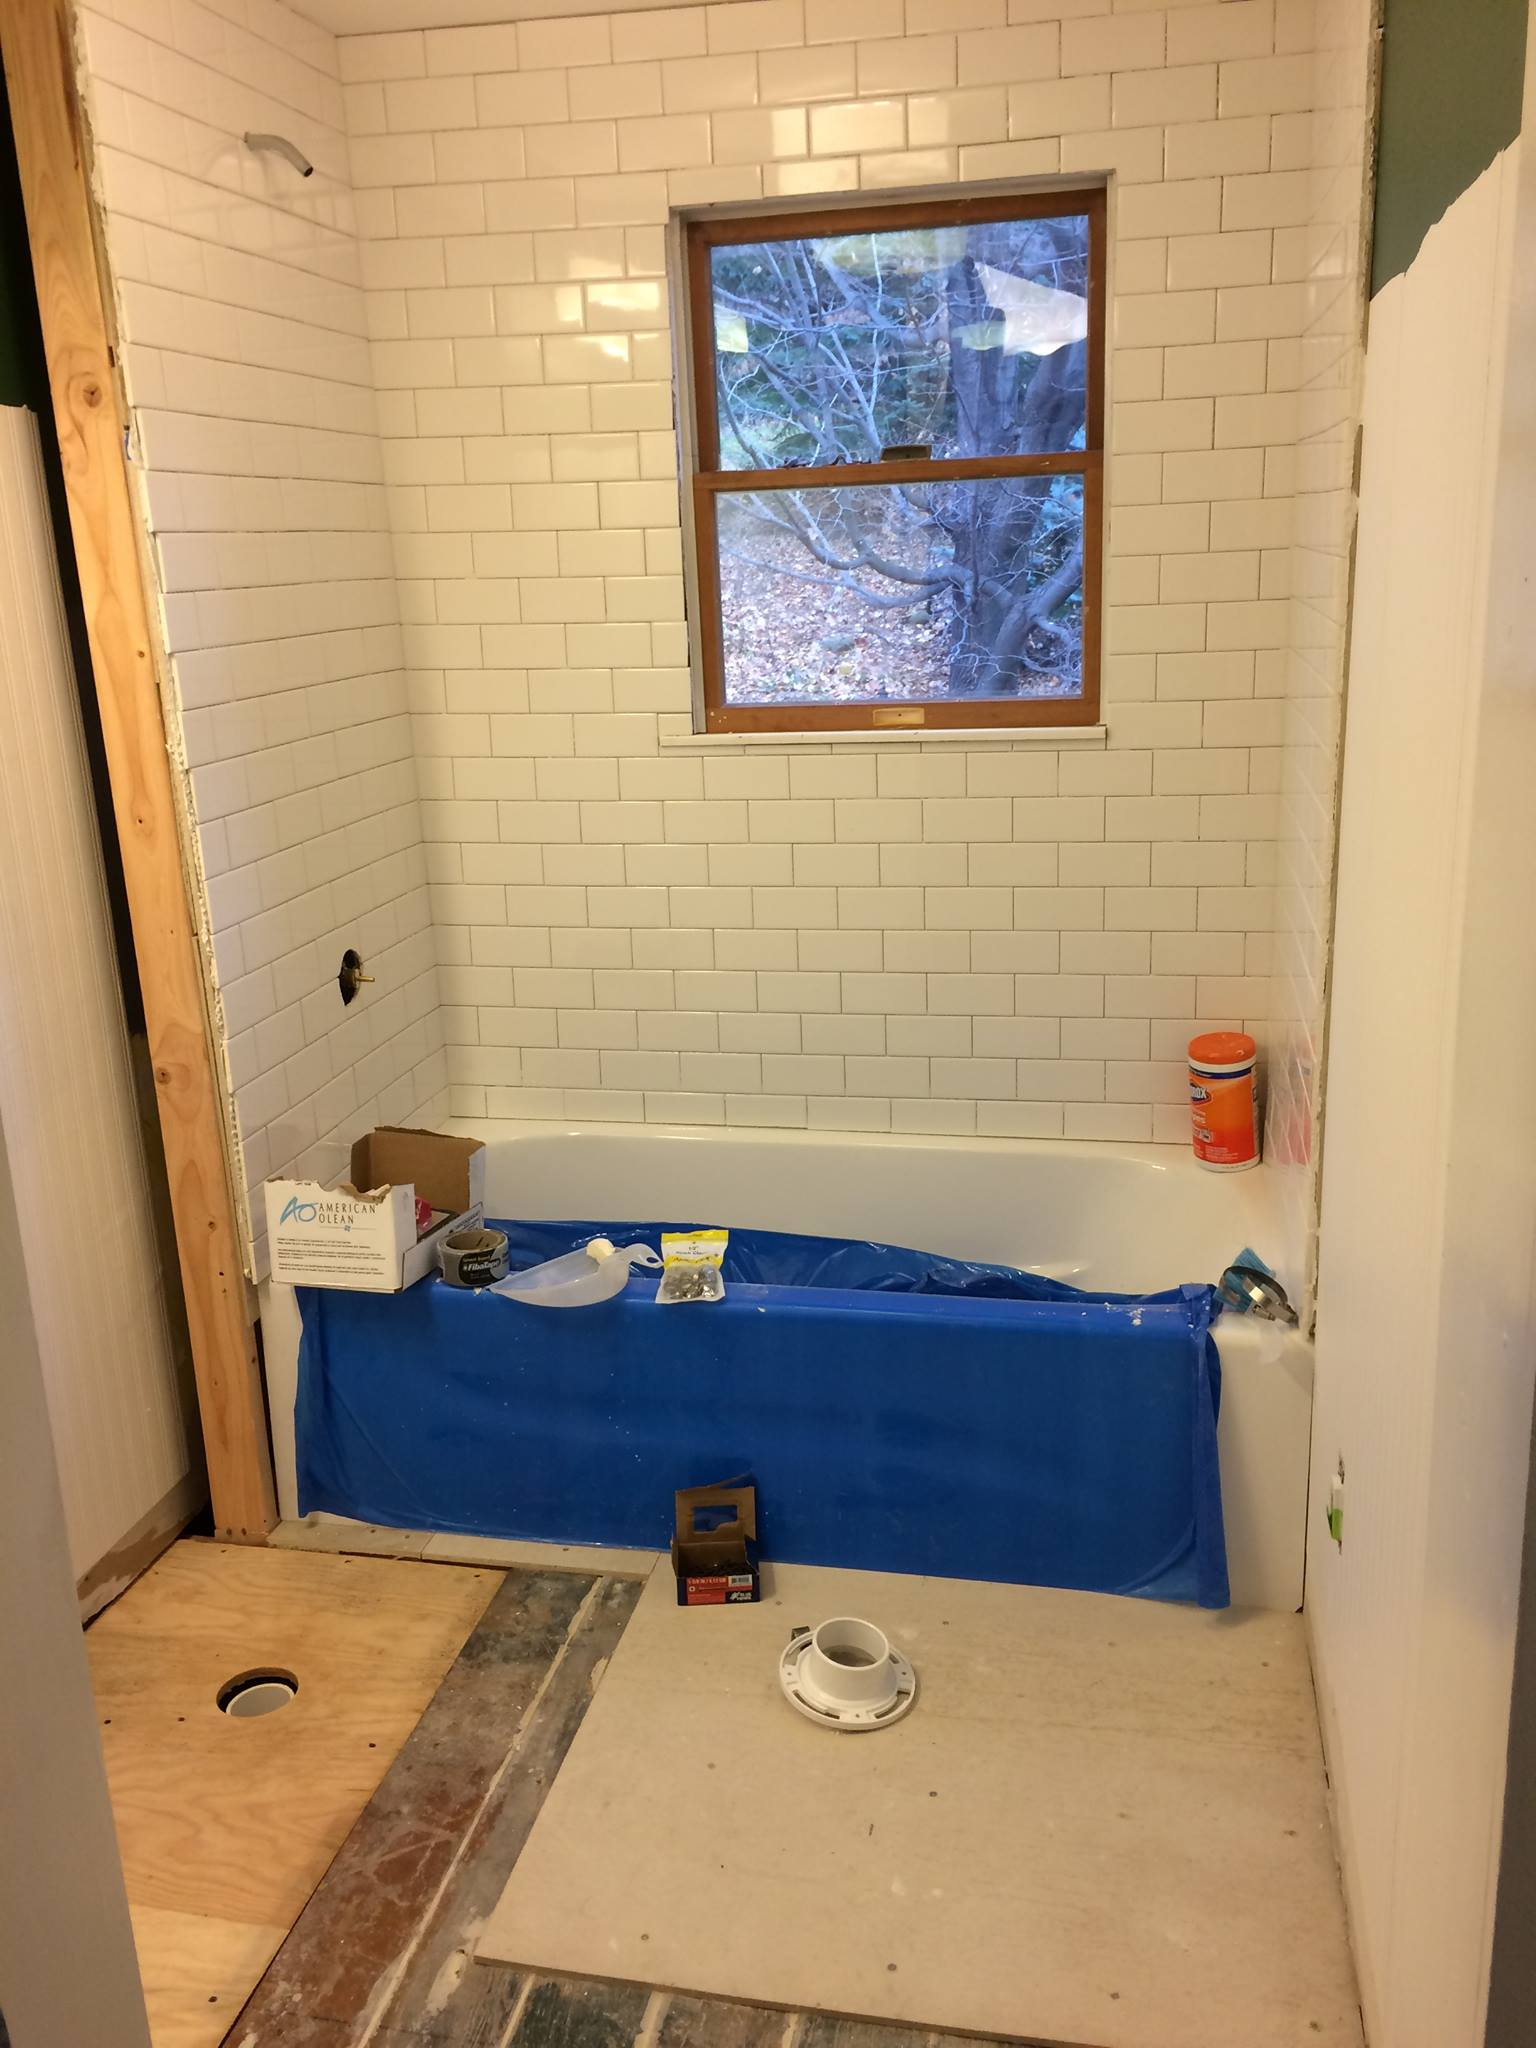 Mid-way through the first of 2 bathrooms we remodeled.